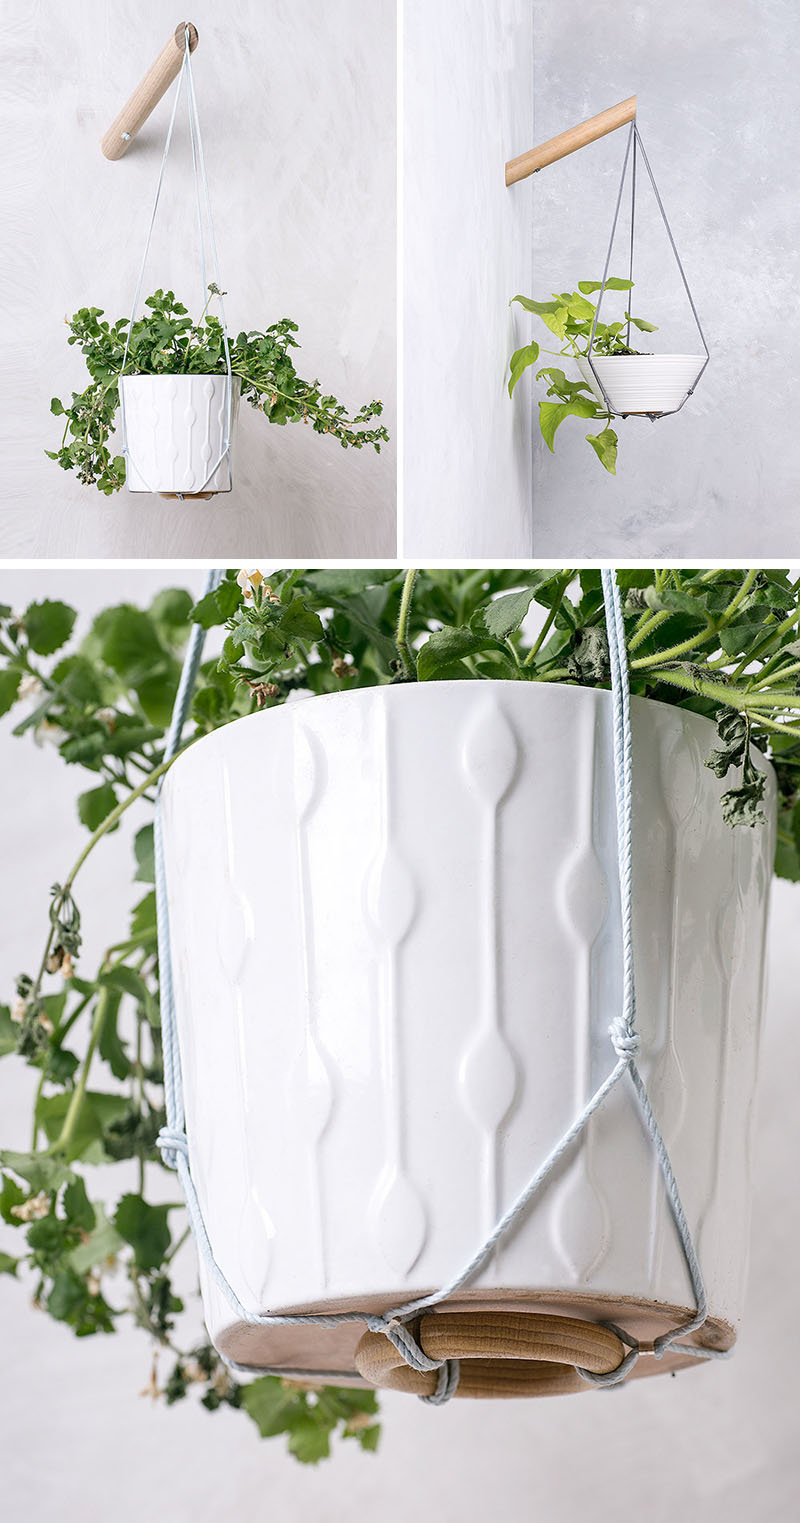 modern-wall-mounted-hanging-planter-300317-201-07